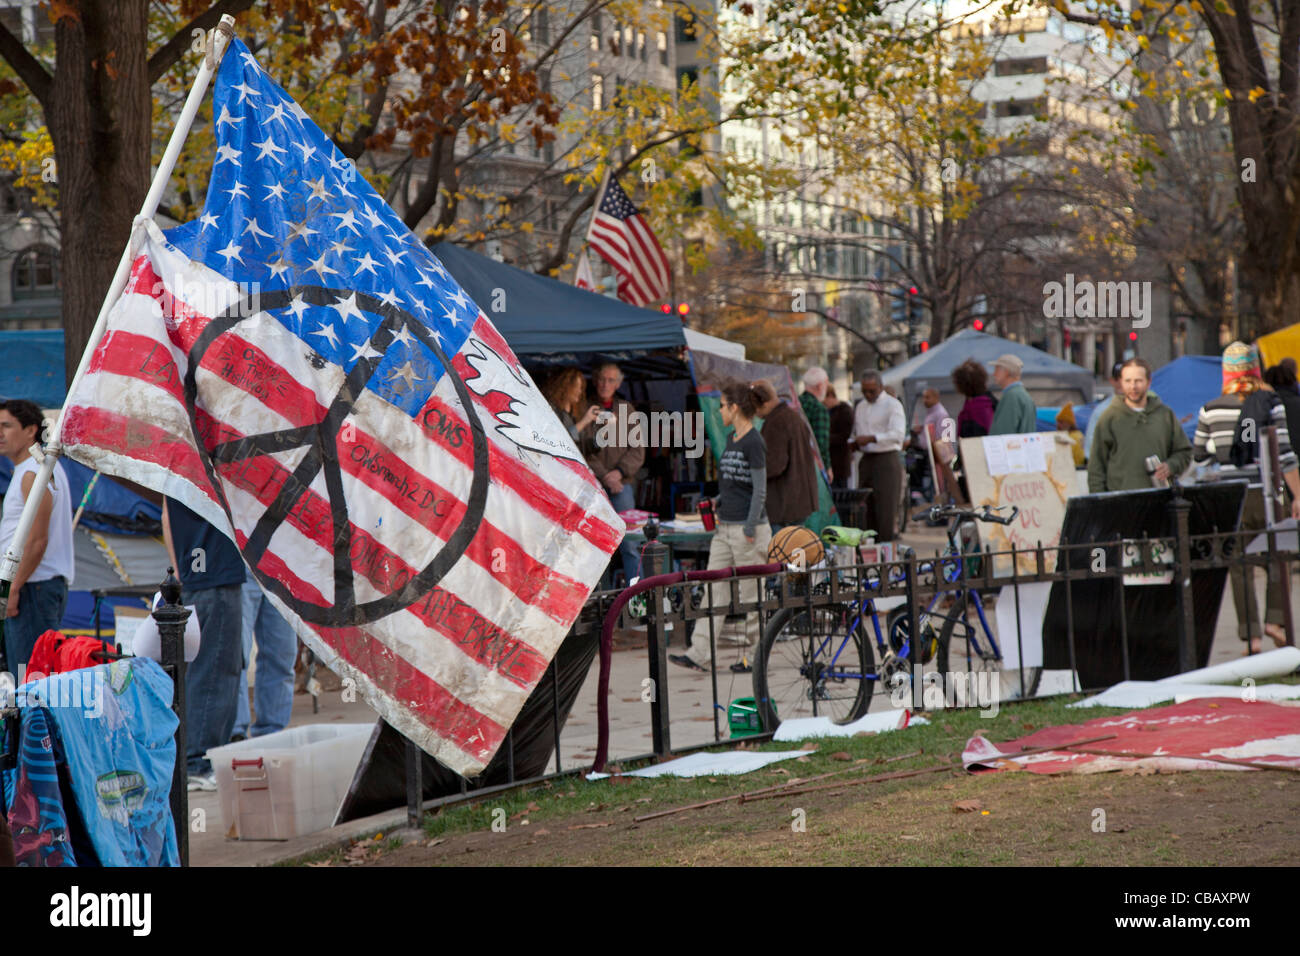 Washington, DC - The Occupy DC camp in McPherson Square. - Stock Image